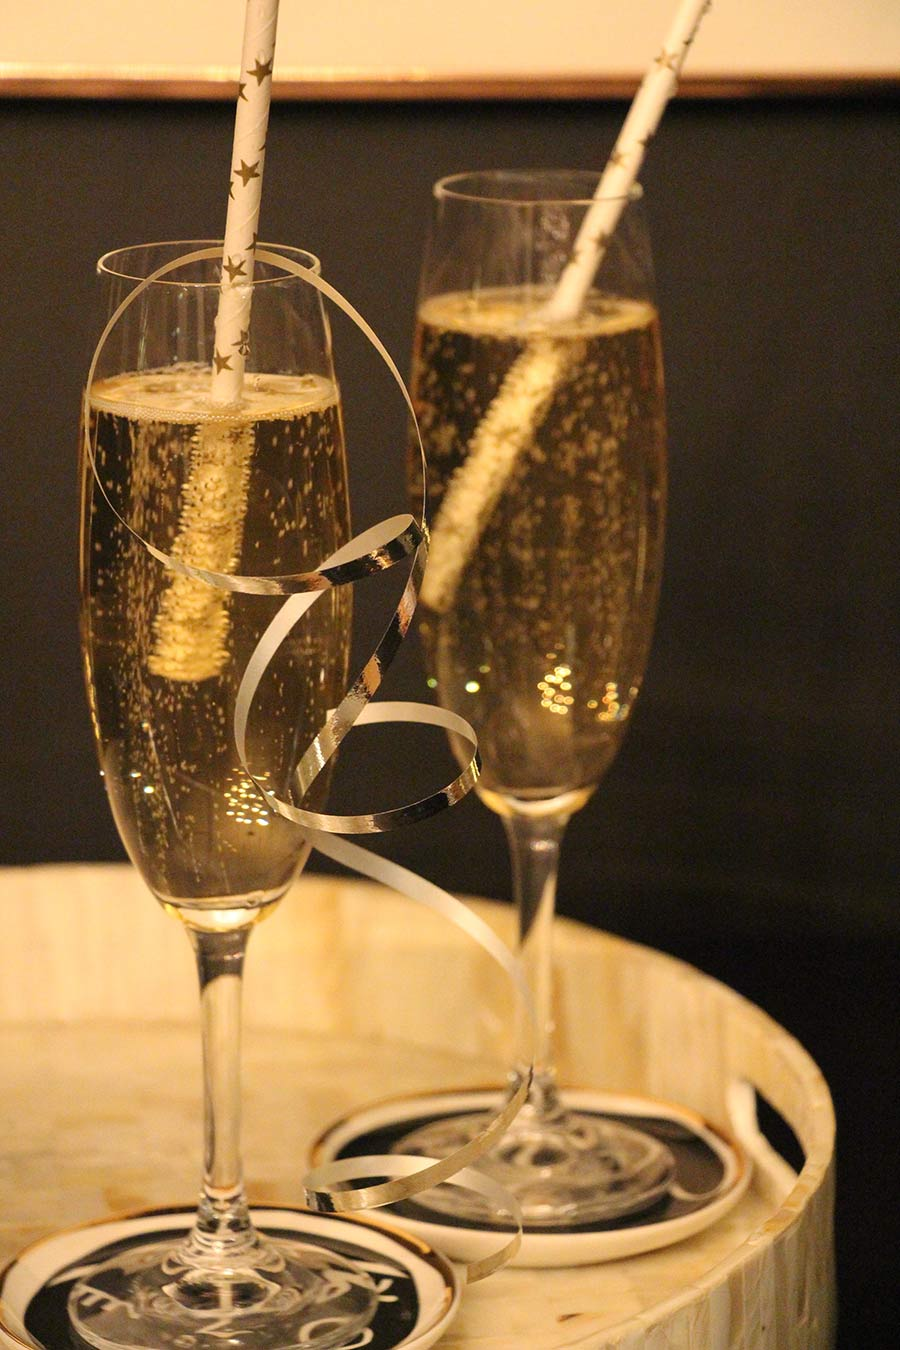 toast-champagne-flutes-new-years-celebration.jpg